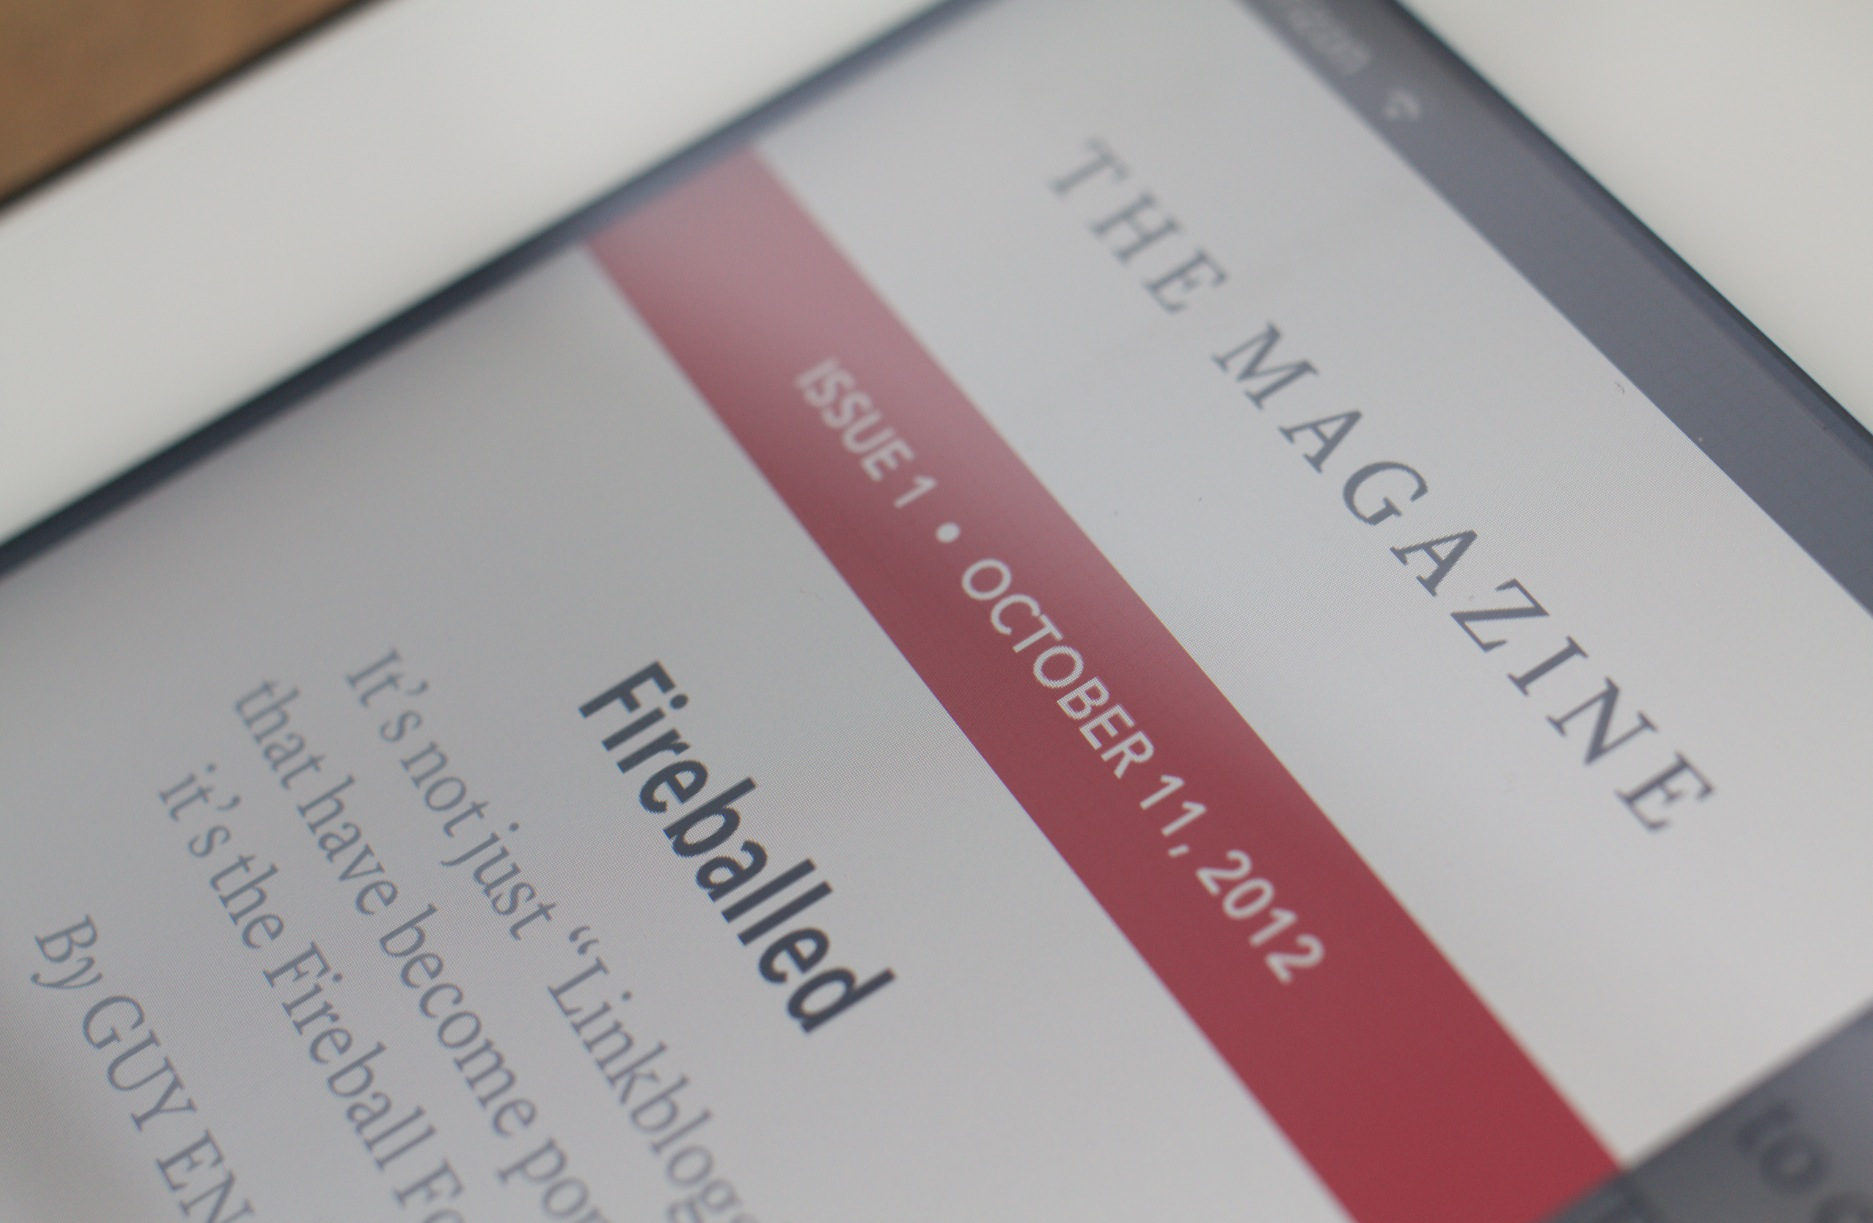 Instapaper creator Marco Arment launches The Magazine, a different kind of periodical for Apple's ...